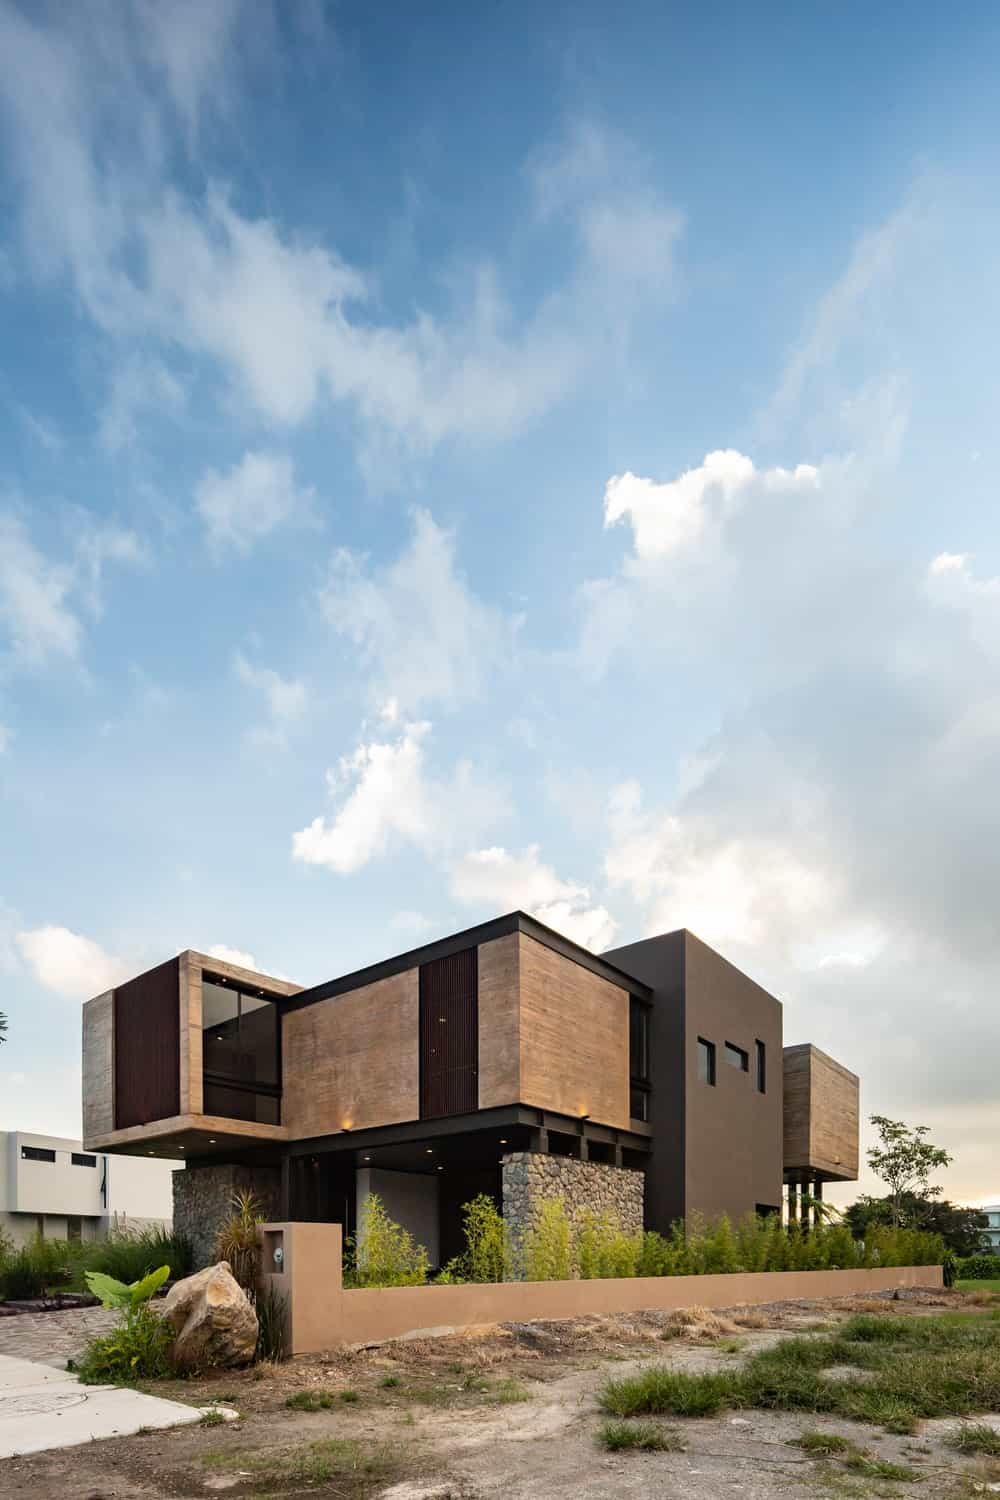 This angled side view of the house shows the long planter on the side wall lining the side of the house to complement the earthy tones.